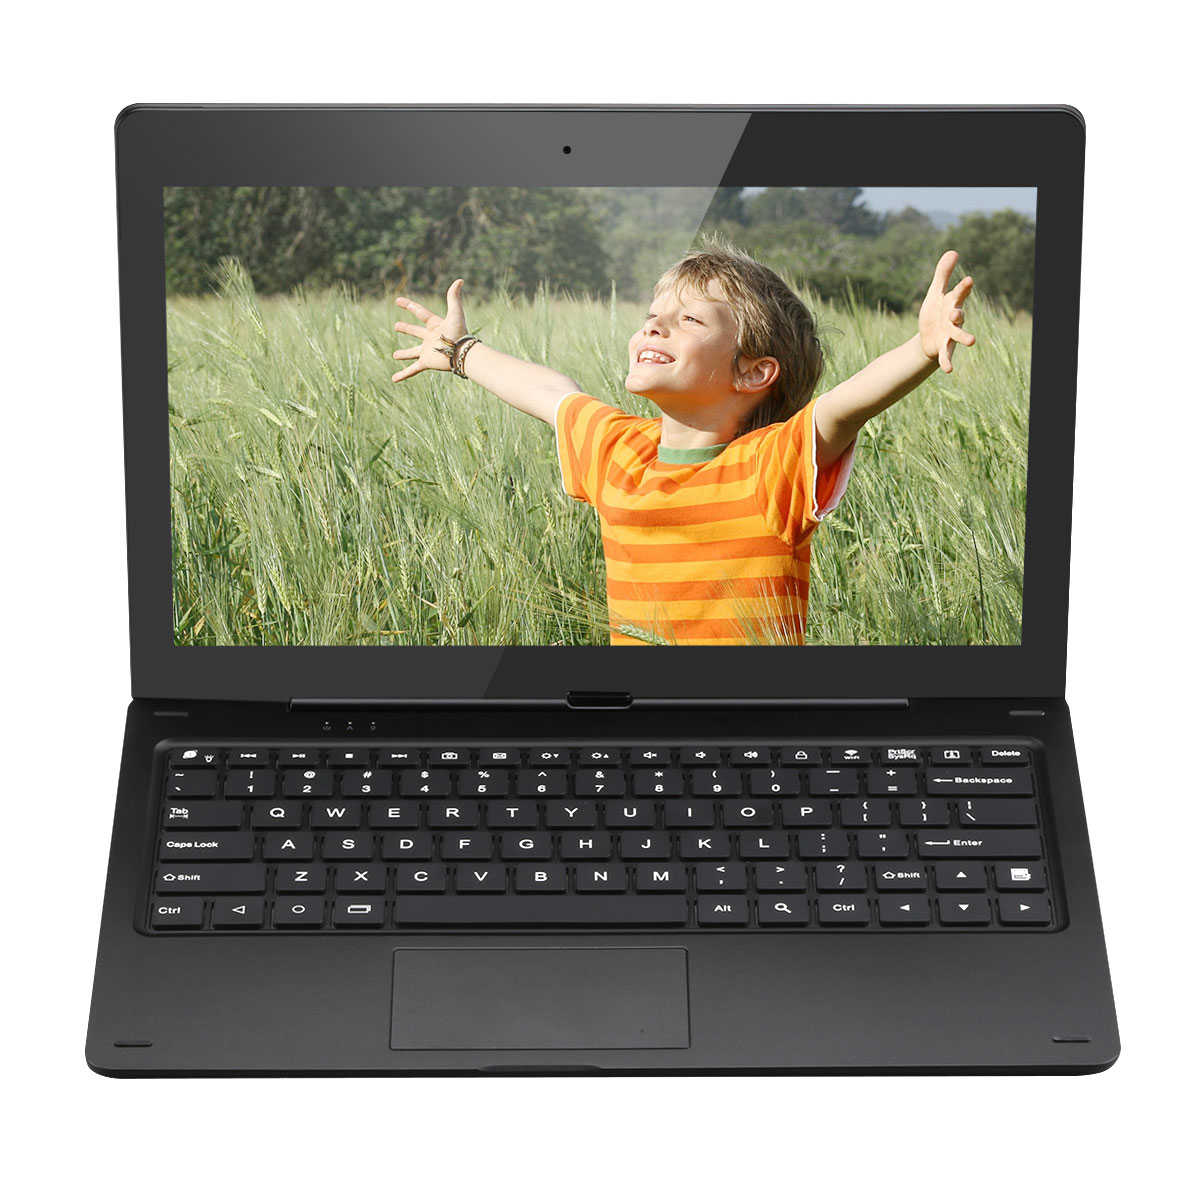 Nextbook Ares11A 11.6 2-in-1 Tablet PC IPS 1366x768 Android 6.0 Intel x5-Z8300 2GB+64GB WIFI Bluetooth 4.0 HDMI with unique laptop keyboard